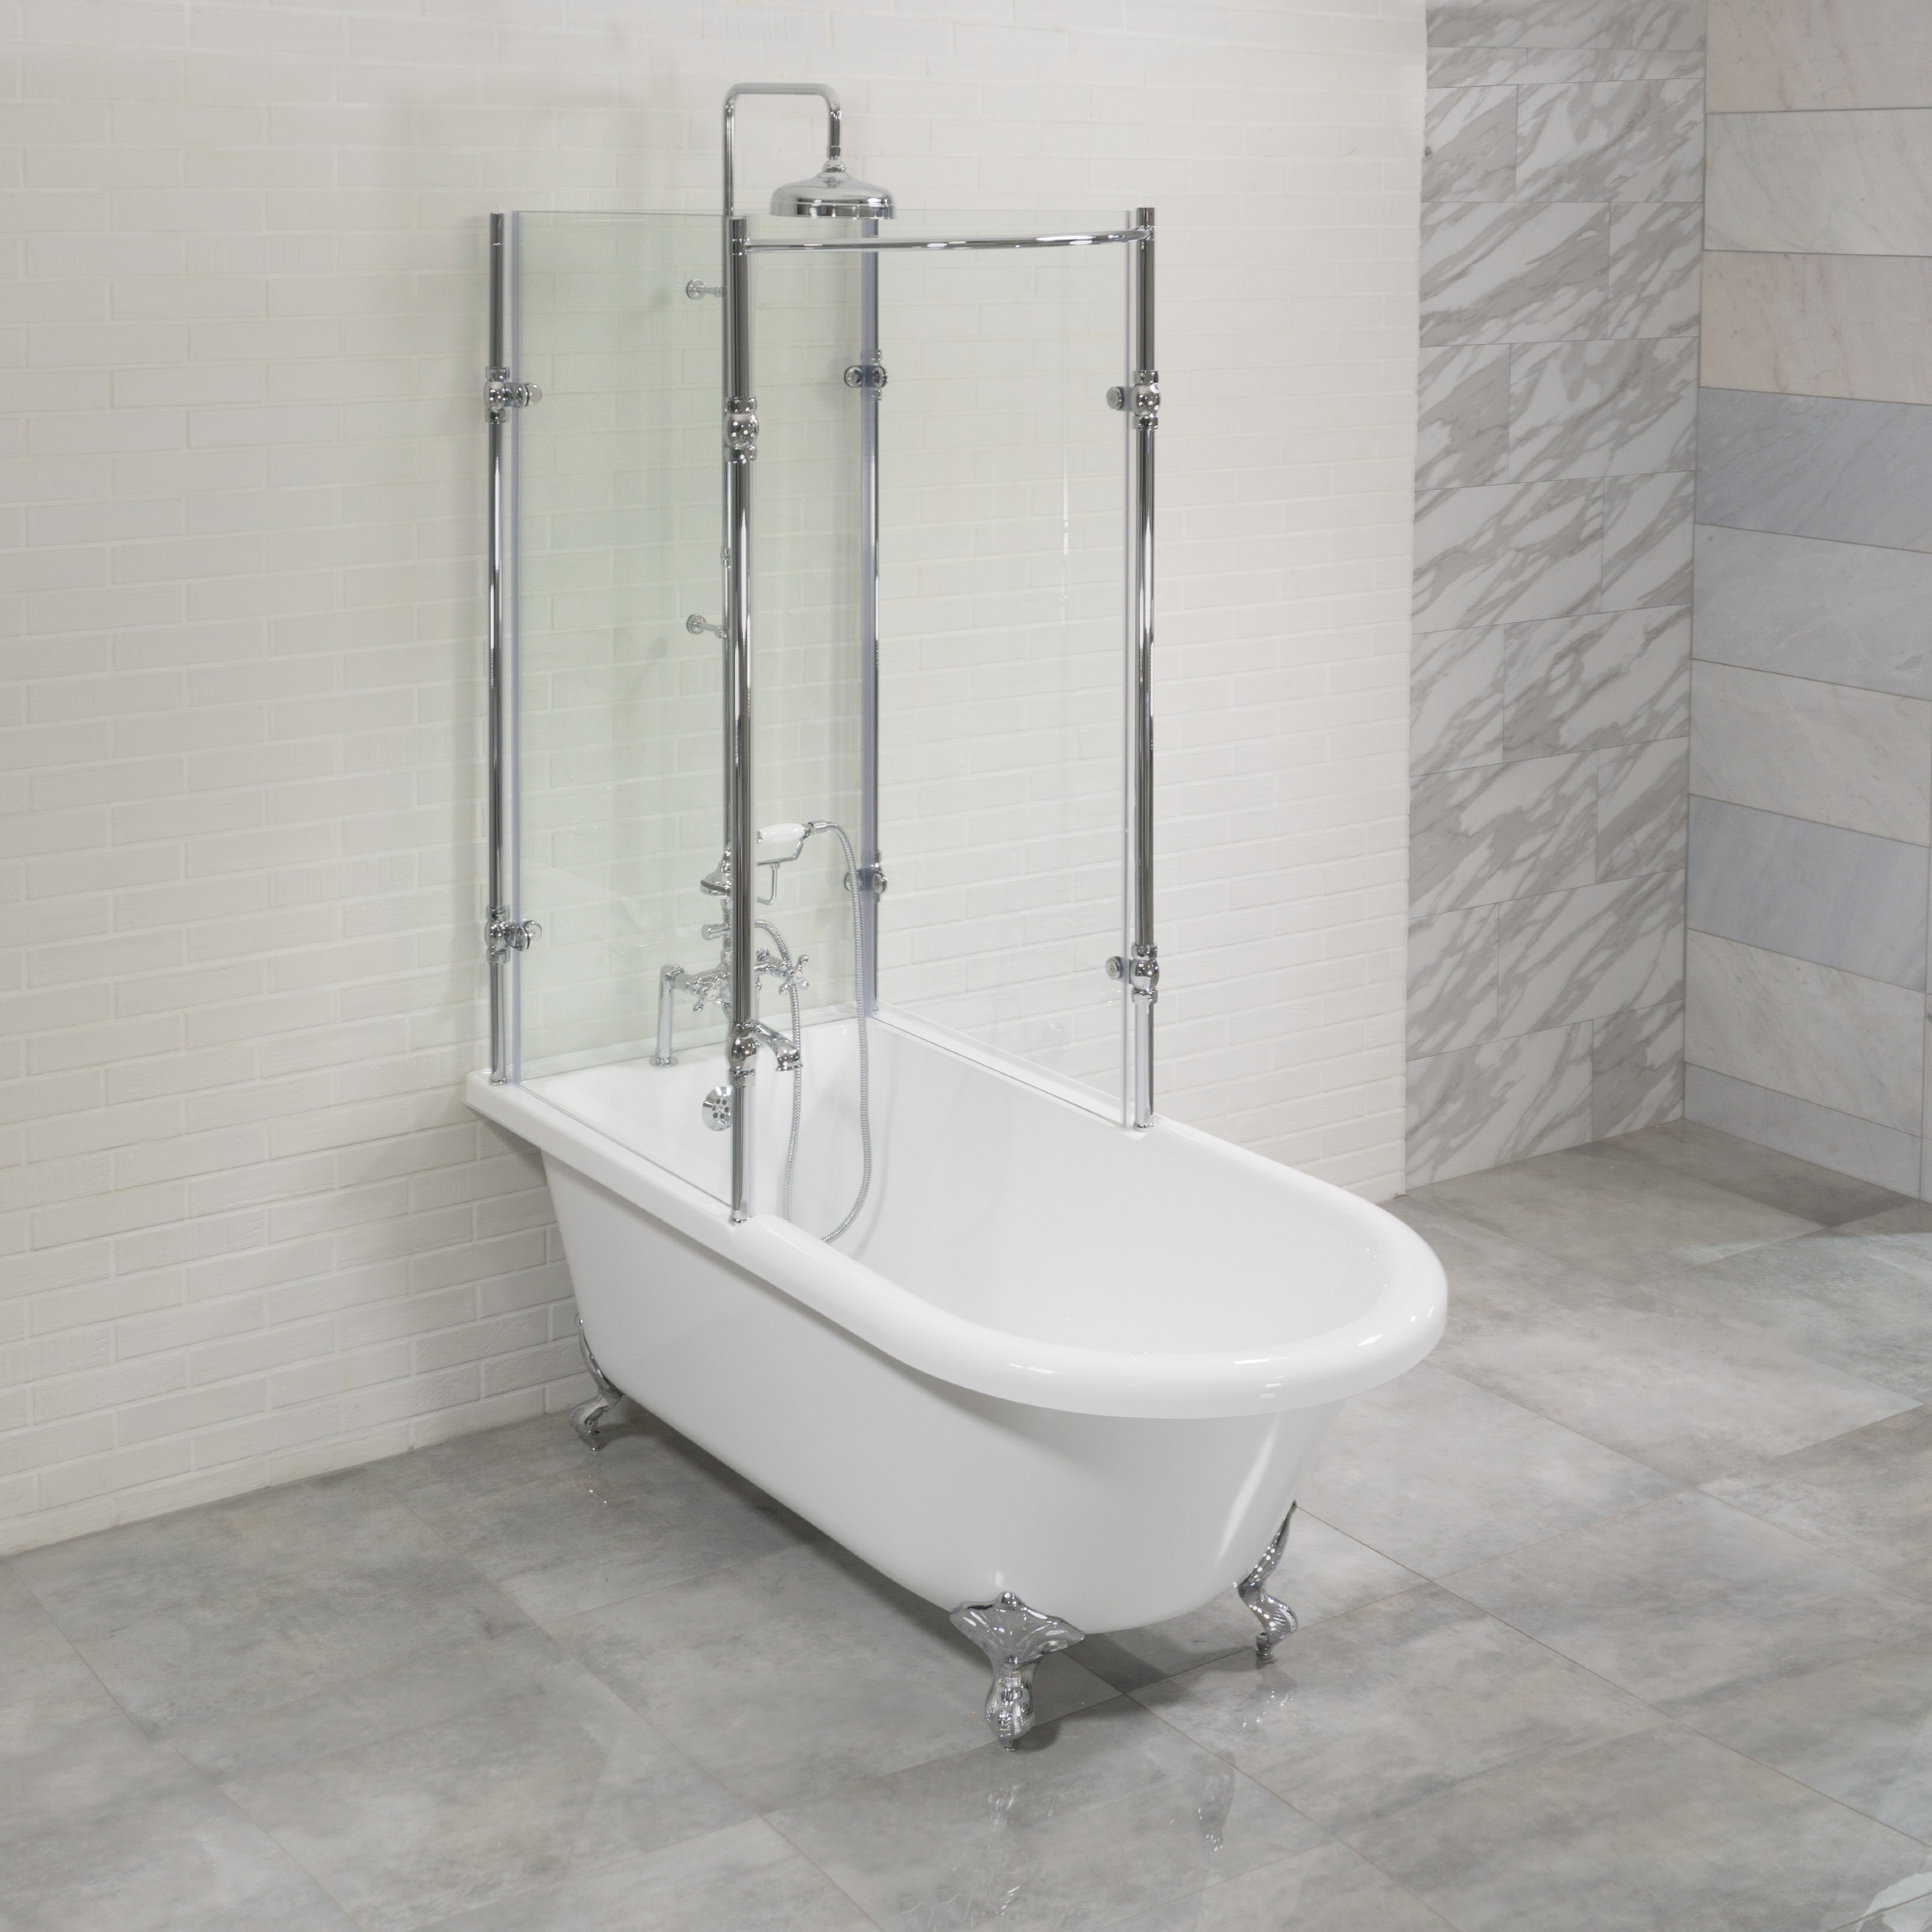 Oasis Vintage Antique Clawfoot Tub With Glass Shower Surround - Clawfoot tub with shower surround